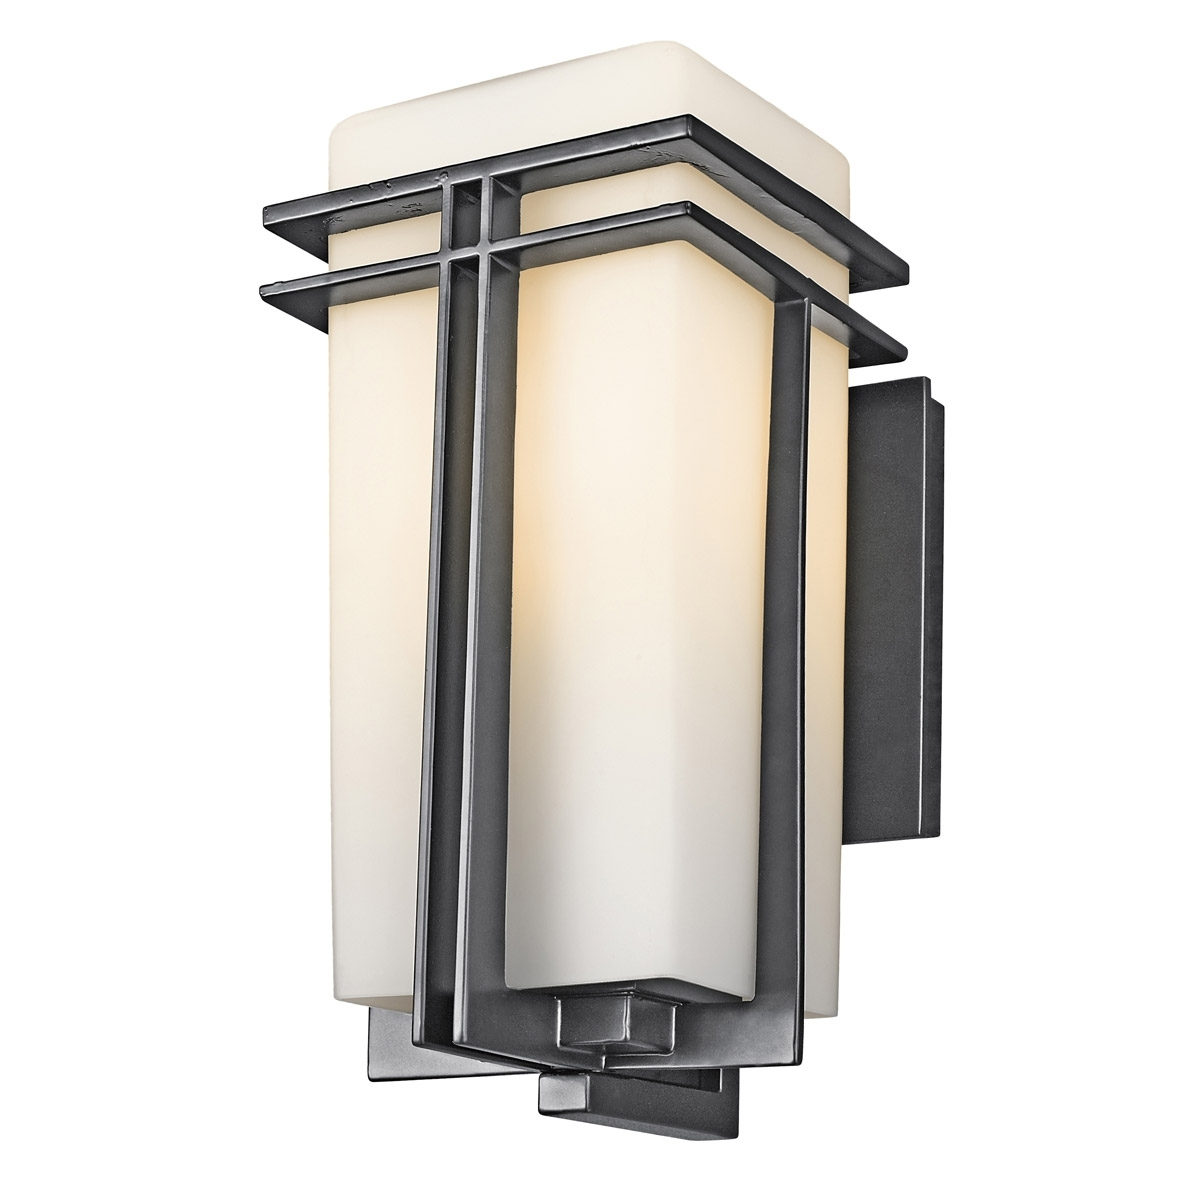 Popular Contemporary Outdoor Wall Lighting Sconces For Modern Outdoor Wall Lights: 21 Extraordinary Outdoor Wall Lighting (View 8 of 20)